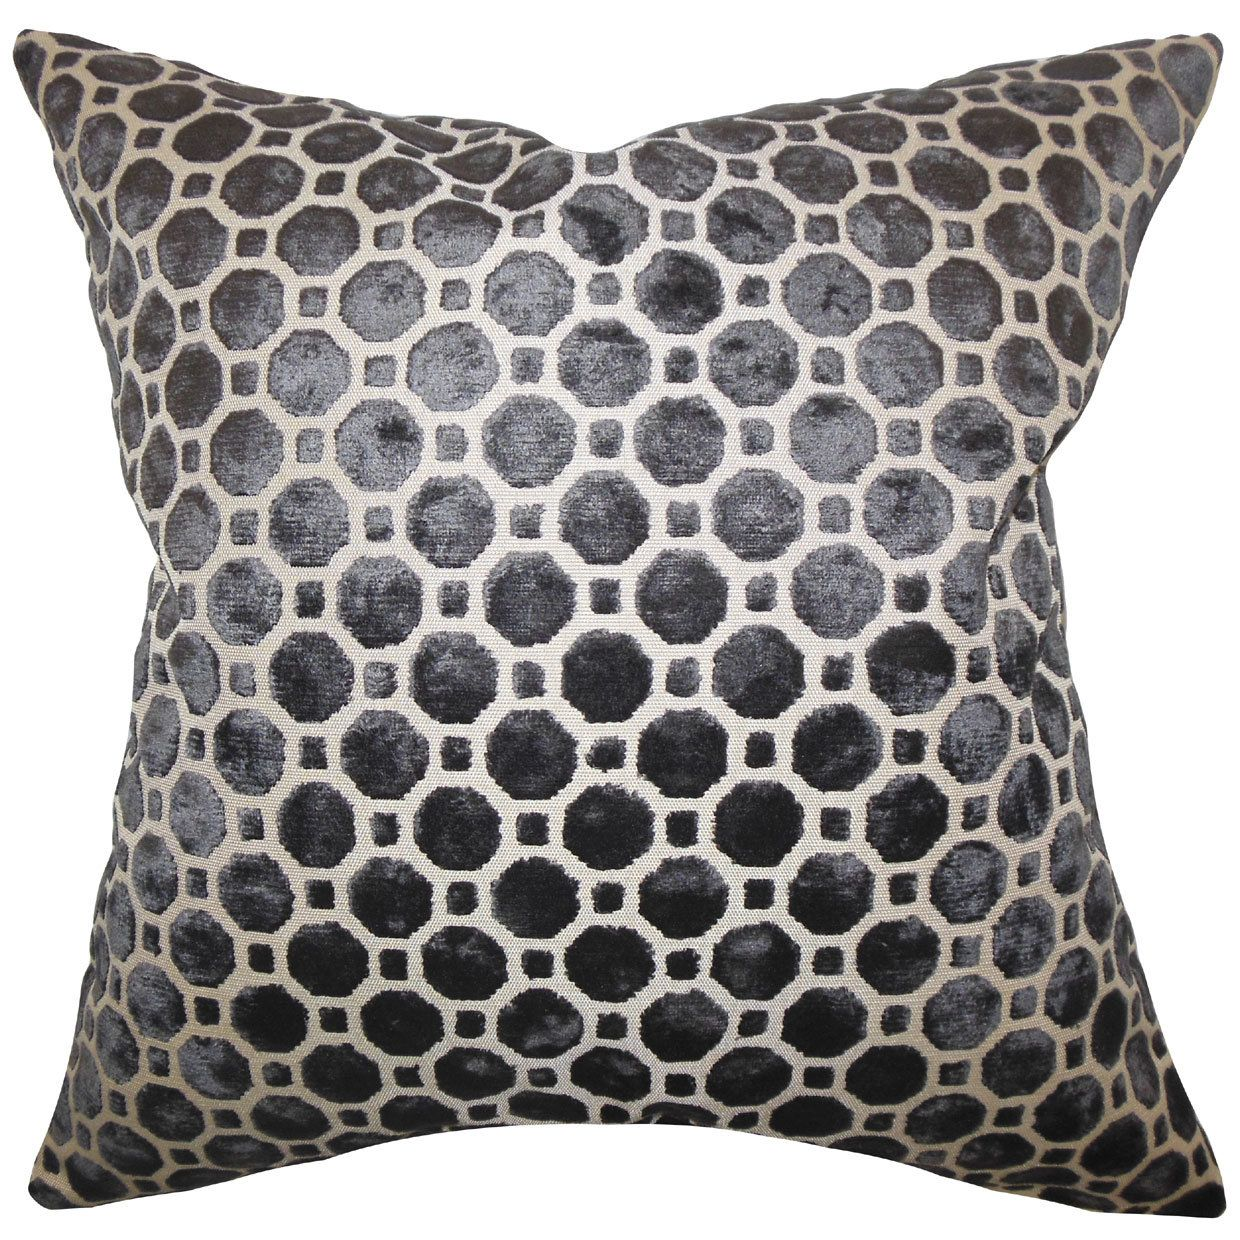 Maeve geometric floor pillow floor pillows pillows and products